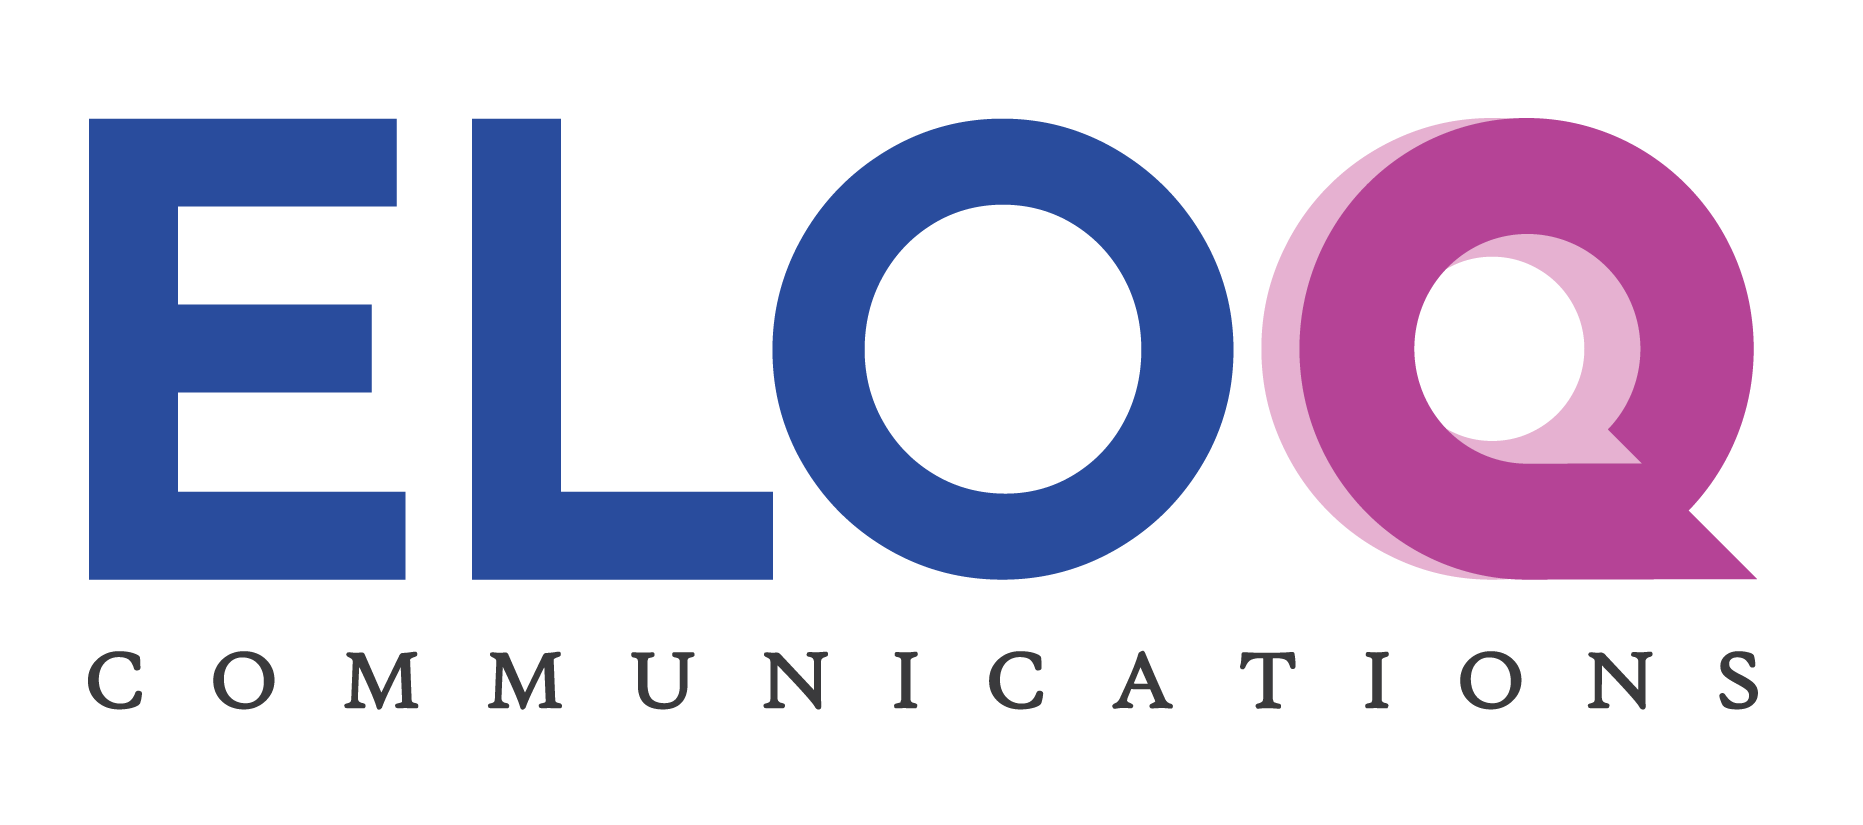 EloQ Communications Logo